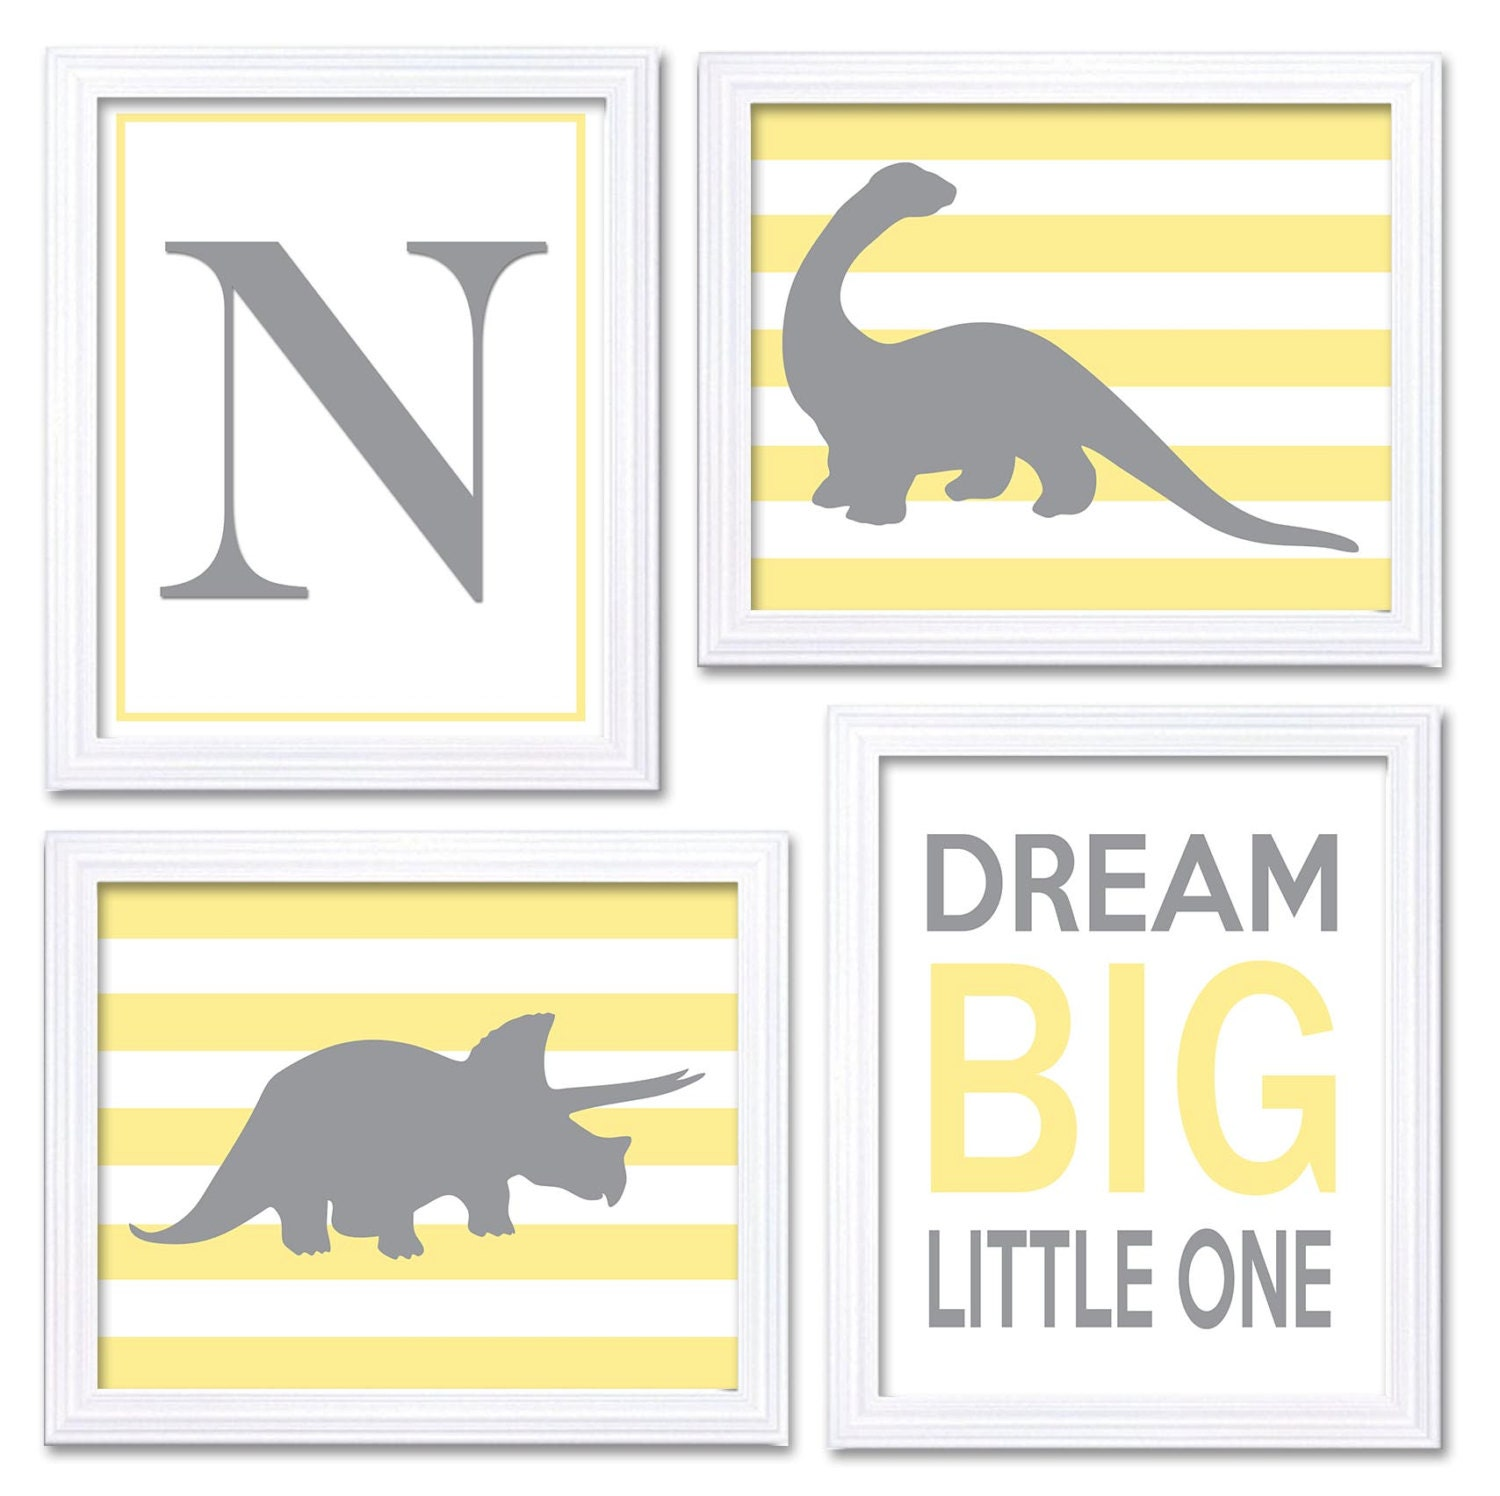 Dinosaur Nursery Art Set of 4 Prints Grey Yellow Stripes Tyrannosaurus Rex Brachiosaurus Dream Big L